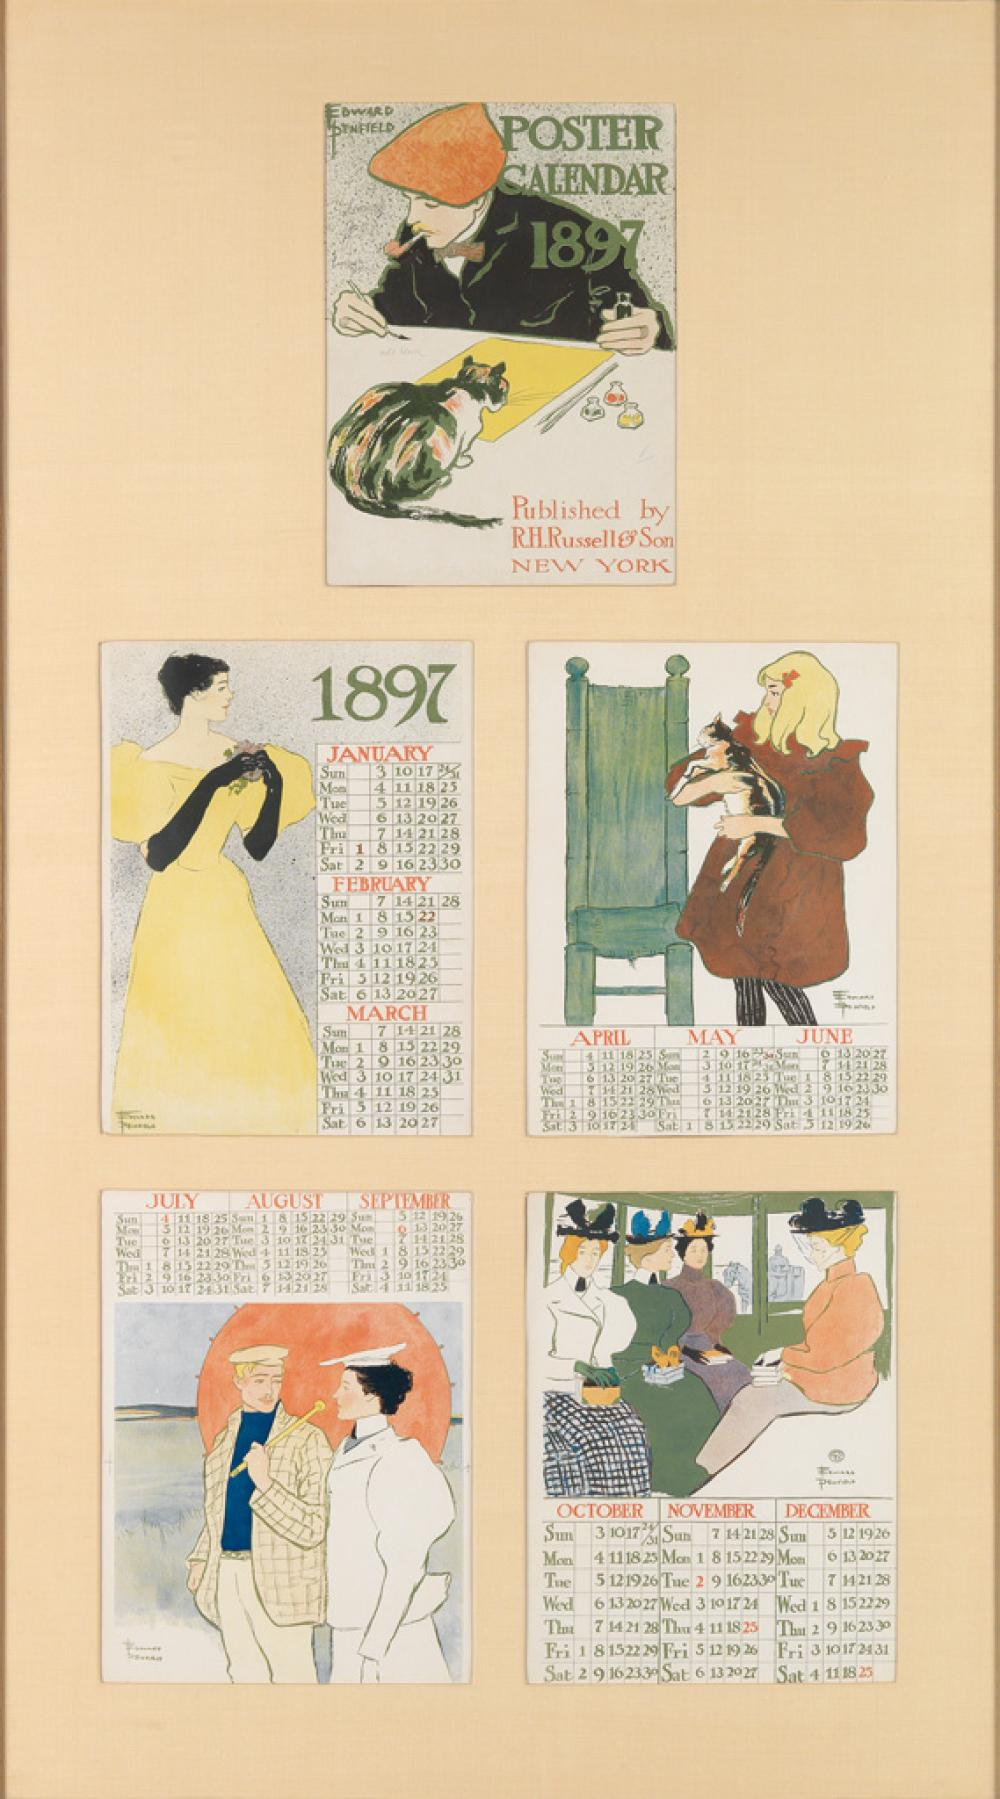 EDWARD PENFIELD (1866-1925). POSTER CALENDAR. Group of 5 sheets. 1896. Each approximately 14x11 inches, 36x28 cm. R.H. Russell & Son, N